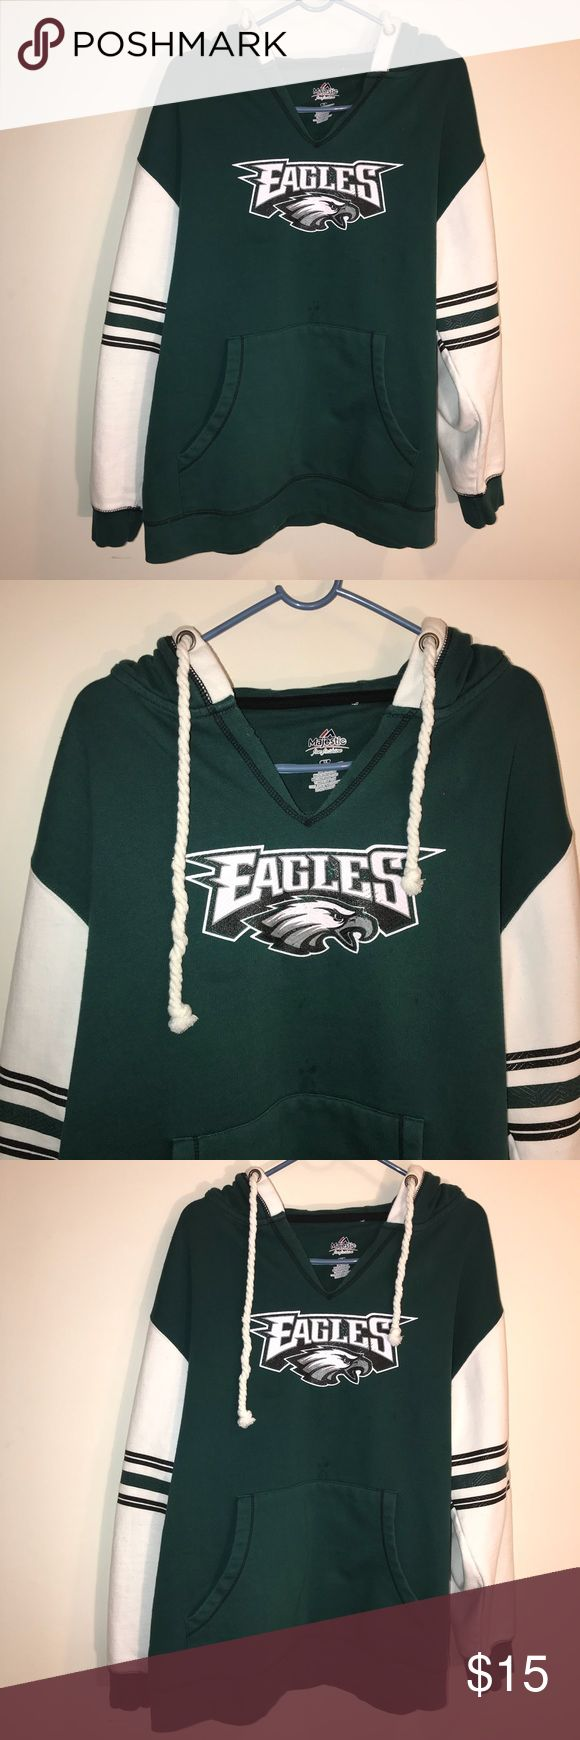 Philadelphia Eagles Hoodie HELLO EVERYONE, I AM OFFERING AN AWESOME  Philadelphia Eagles Hoodie    This Philadelphia Eagles Hoodie is In Great Condition. V Neck cutout by the neck., Size is a XL    Please SEE THE PICTURES FOR MORE DETAIL       Thanks For looking    ALL ITEMS WILL BE PACKED SECURELY, Majestic Shirts Sweatshirts & Hoodies